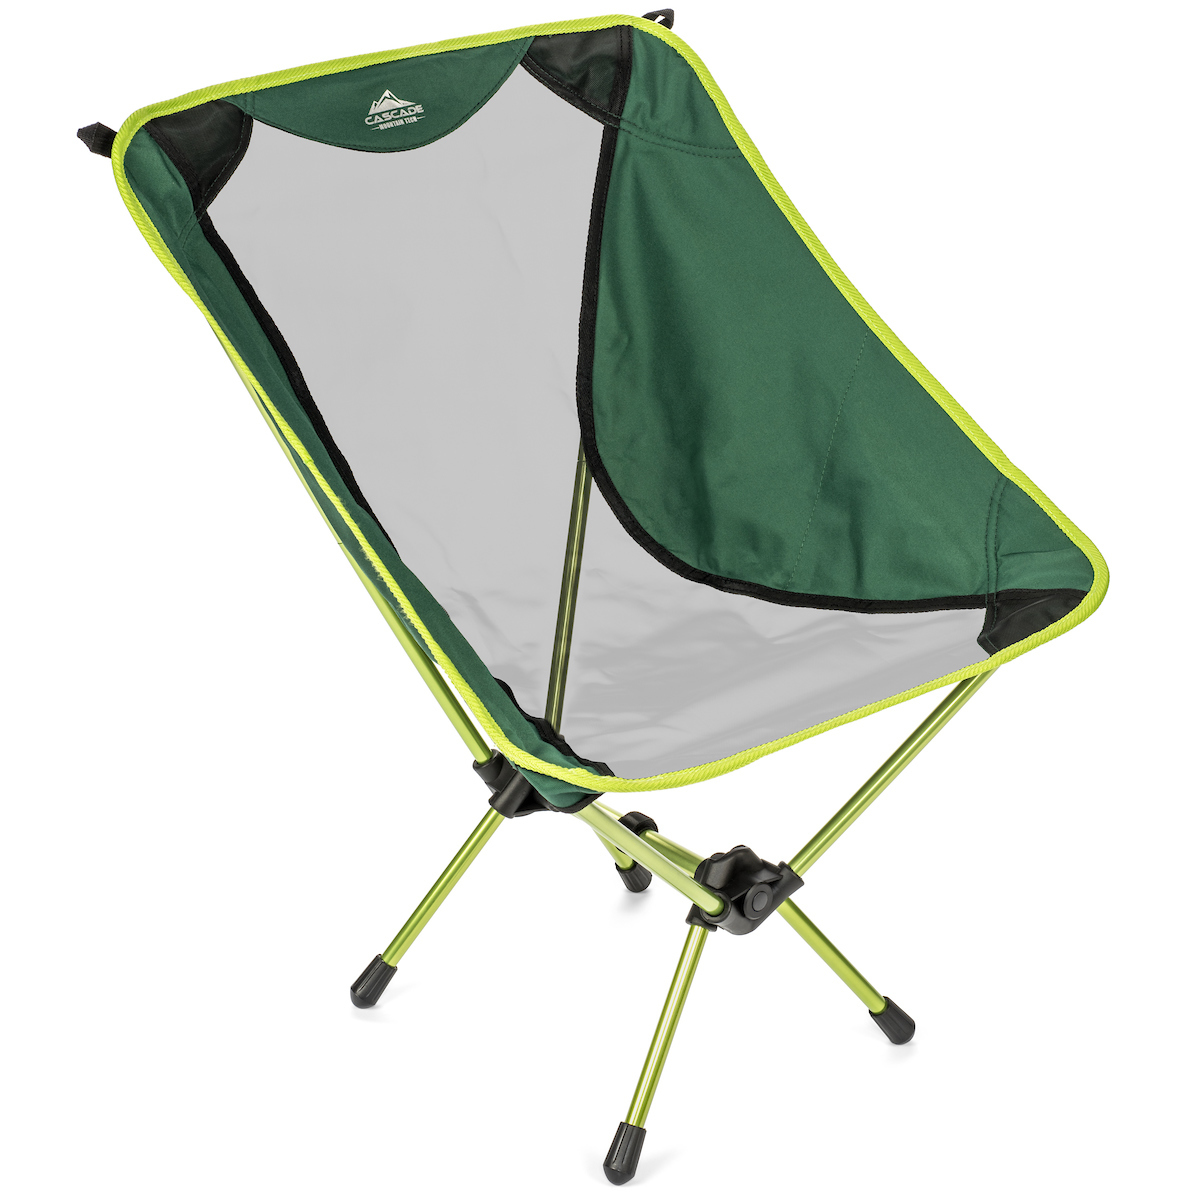 Fine Cascade Mountain Tech Lightweight Backpacking Camp Chair Gmtry Best Dining Table And Chair Ideas Images Gmtryco